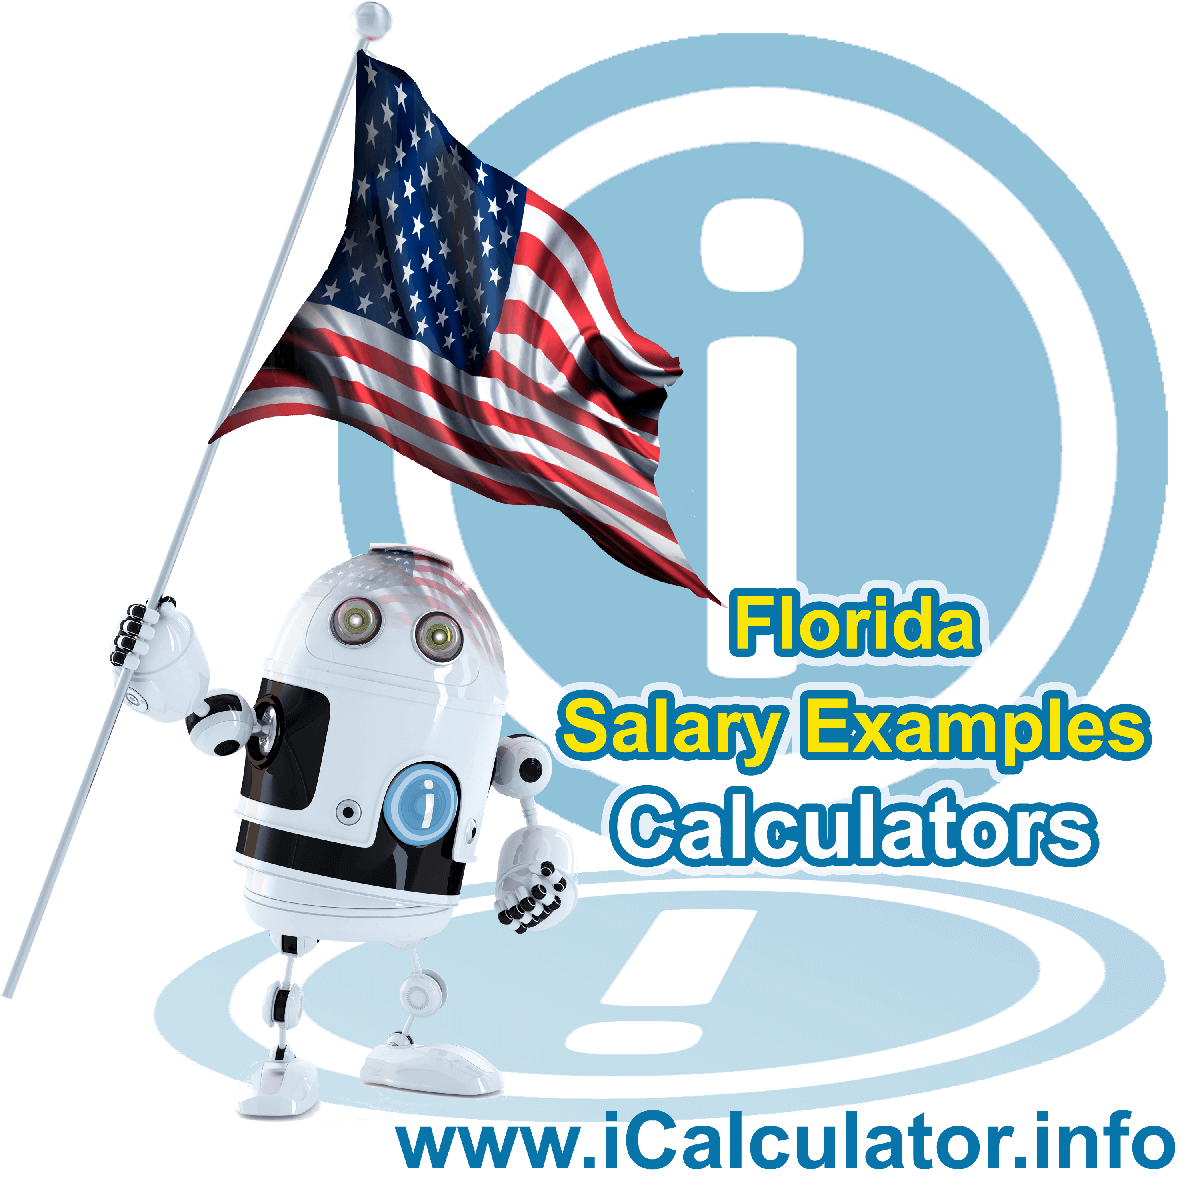 Florida Salary Example for $270.00 in 2020 | iCalculator | $270.00 salary example for employee and employer paying Florida State tincome taxes. Detailed salary after tax calculation including Florida State Tax, Federal State Tax, Medicare Deductions, Social Security, Capital Gains and other income tax and salary deductions complete with supporting Florida state tax tables